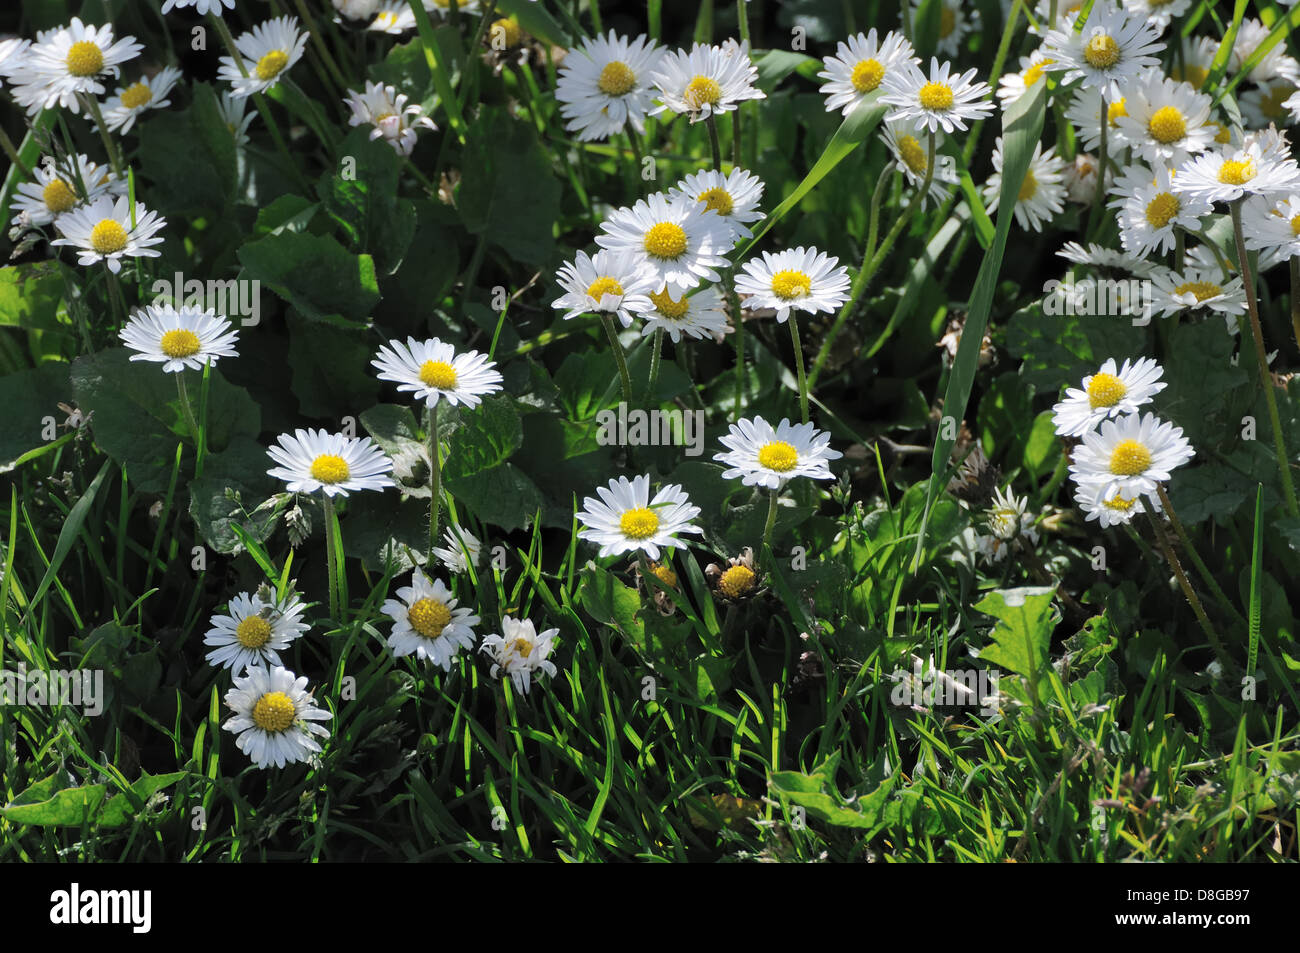 A Clump Of Daisy Flowers Stock Photo 56908467 Alamy